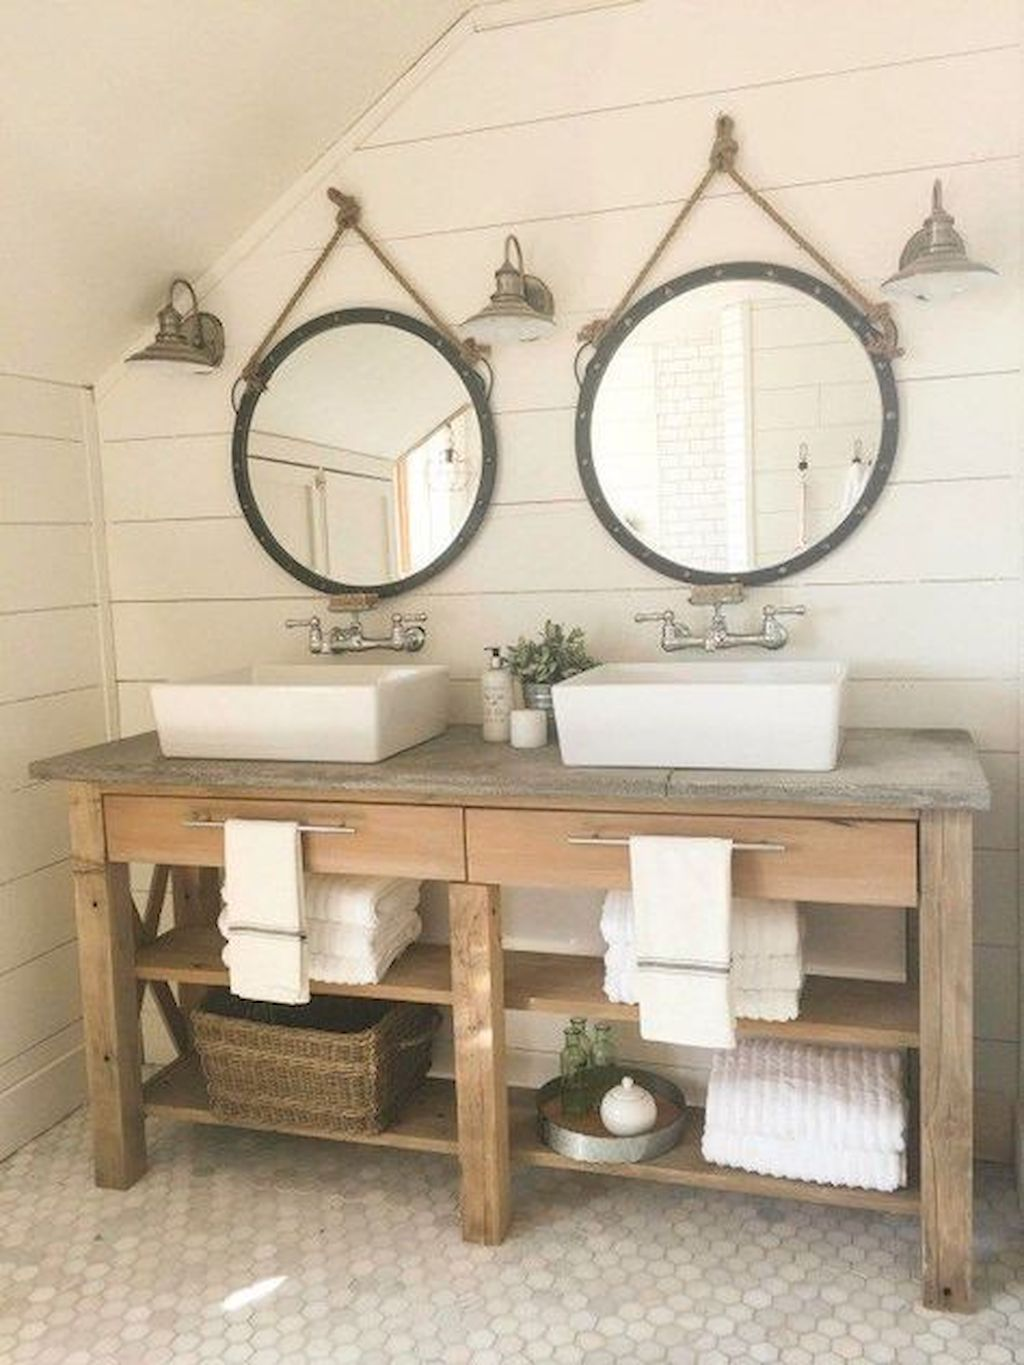 50 Relaxing Rustic Style Bathroom Ideas > Detectview